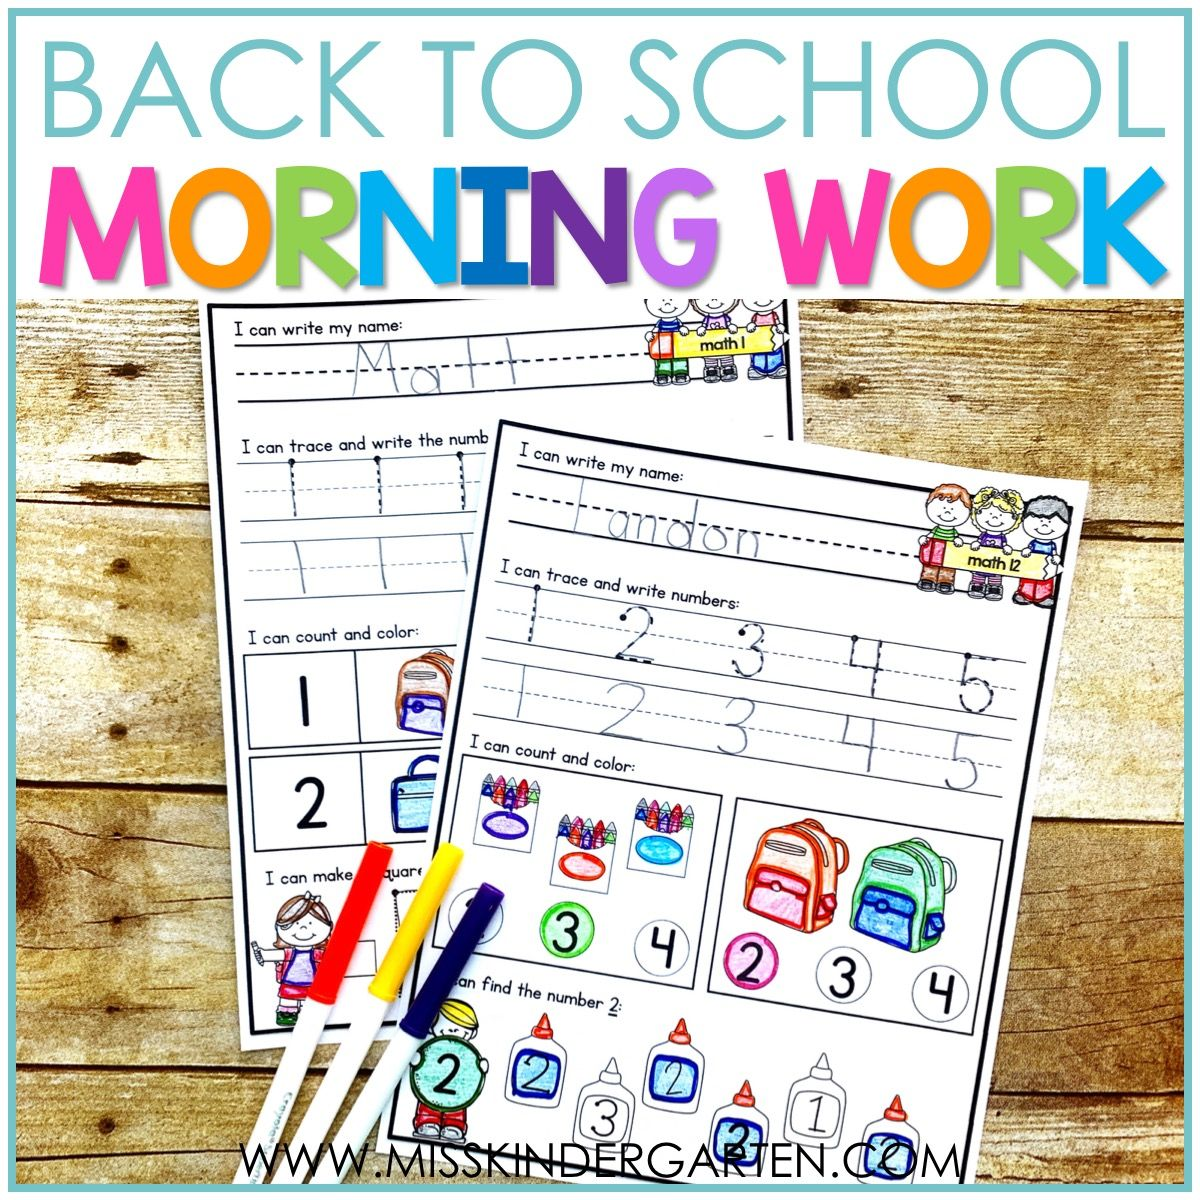 I Am So Excited About This Morning Work It Has Been On My To Do List For Almost Morning Work Kindergarten Free Graphing Kindergarten Kindergarten Morning Work [ 1200 x 1200 Pixel ]